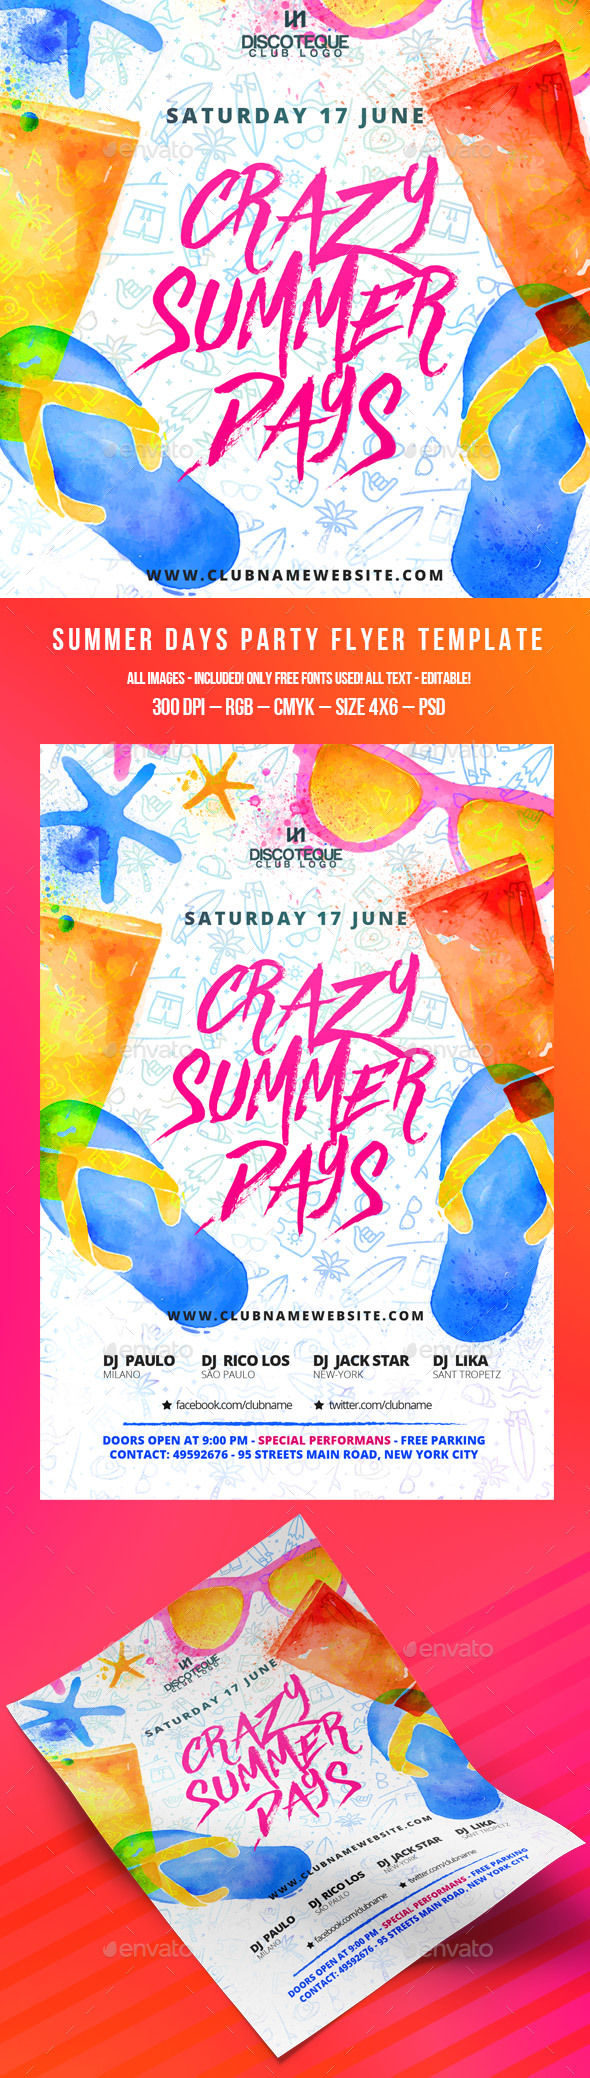 Summer Party Flyer Template PSD. Download here: http://graphicriver.net/item/summer-party/15730887?ref=ksioks